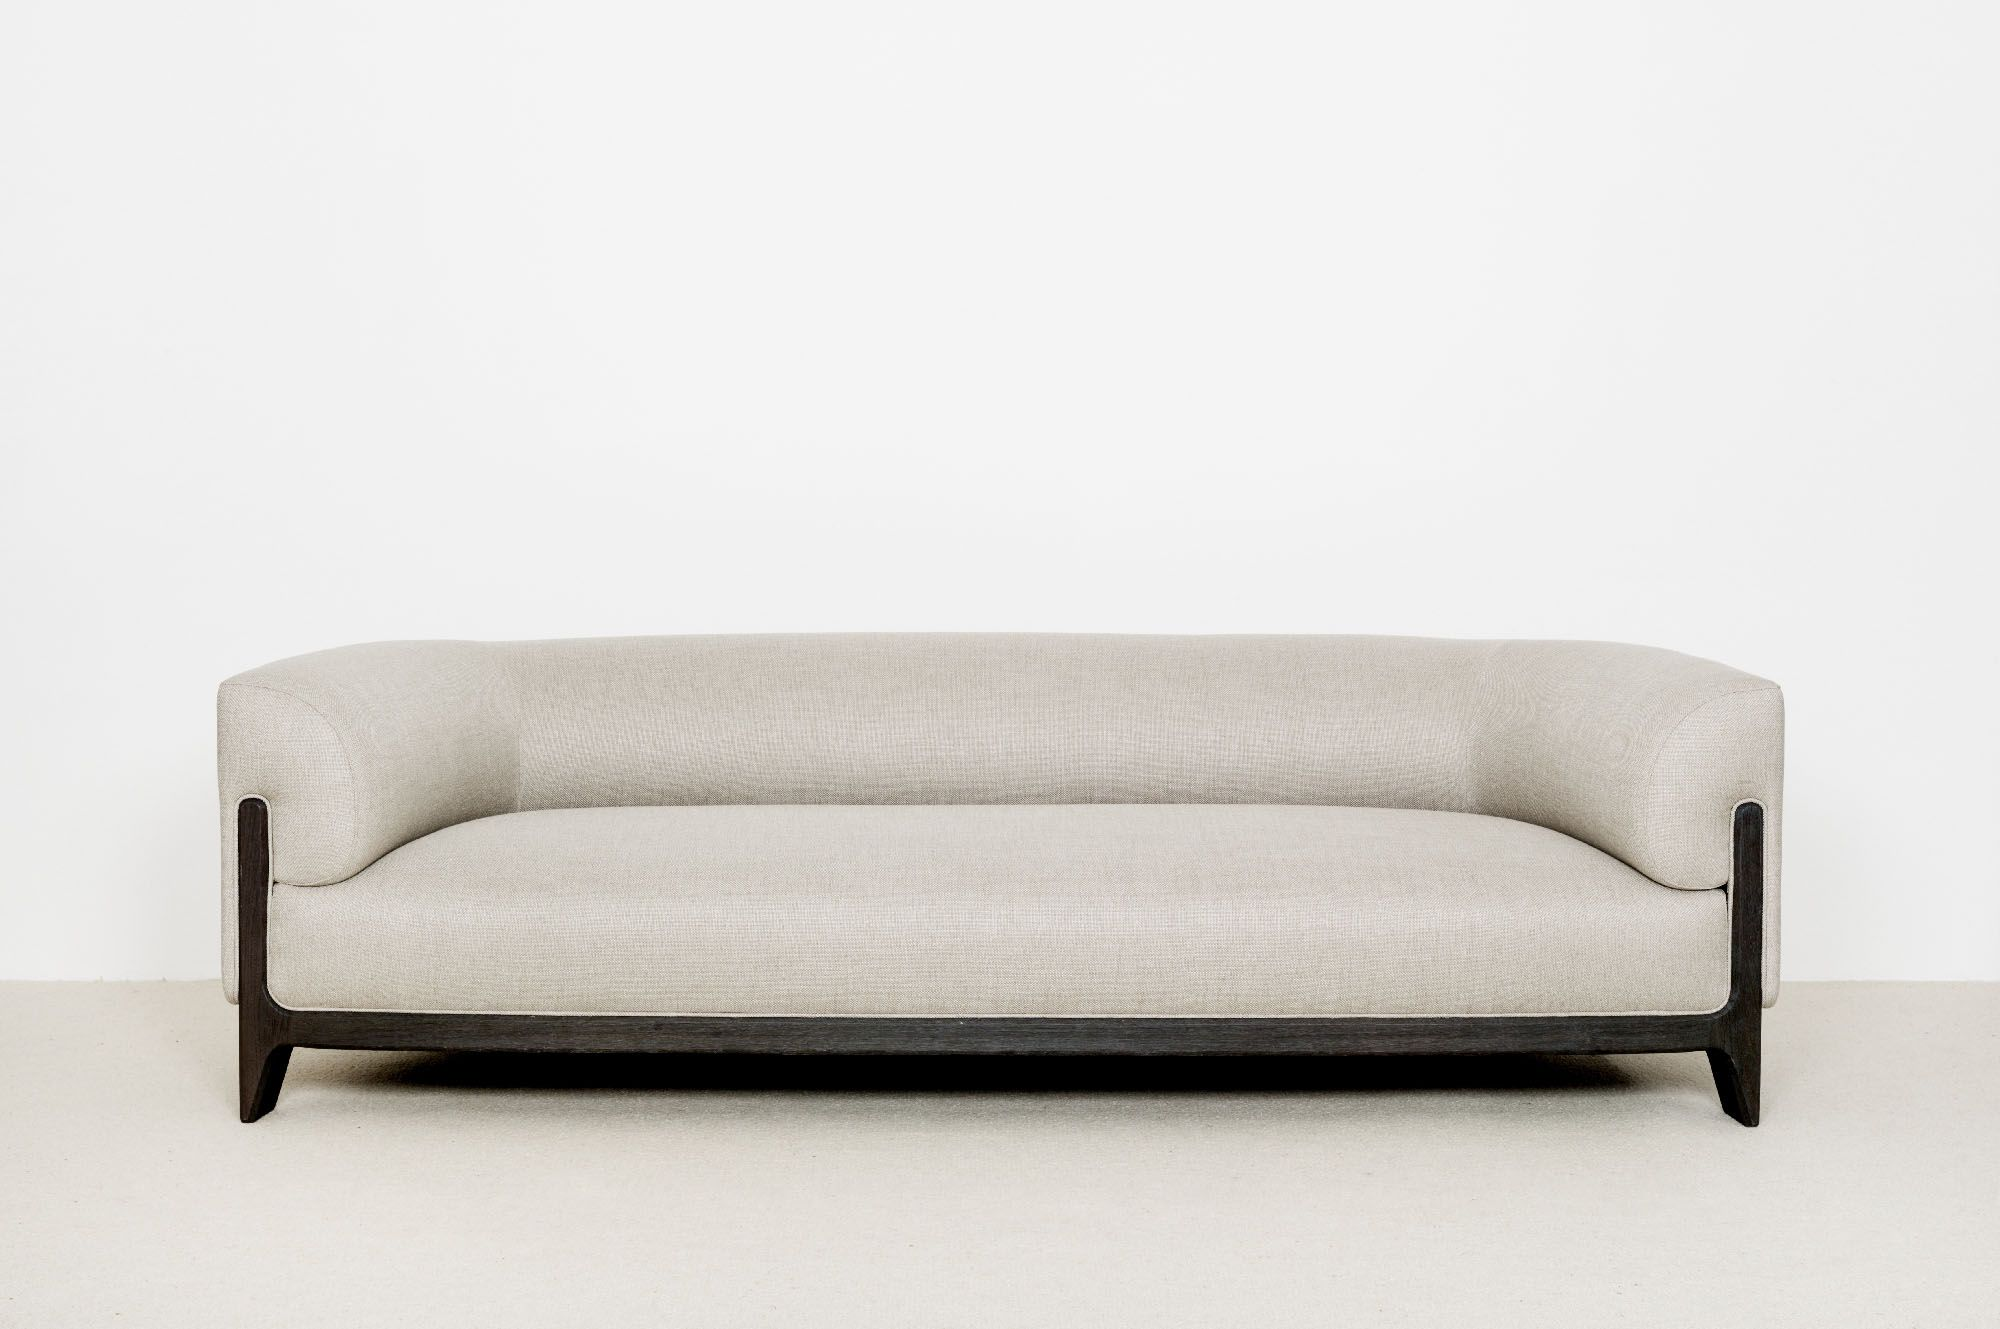 Bob Sofa Melanie Sofa Bob S Furniture Thesofa